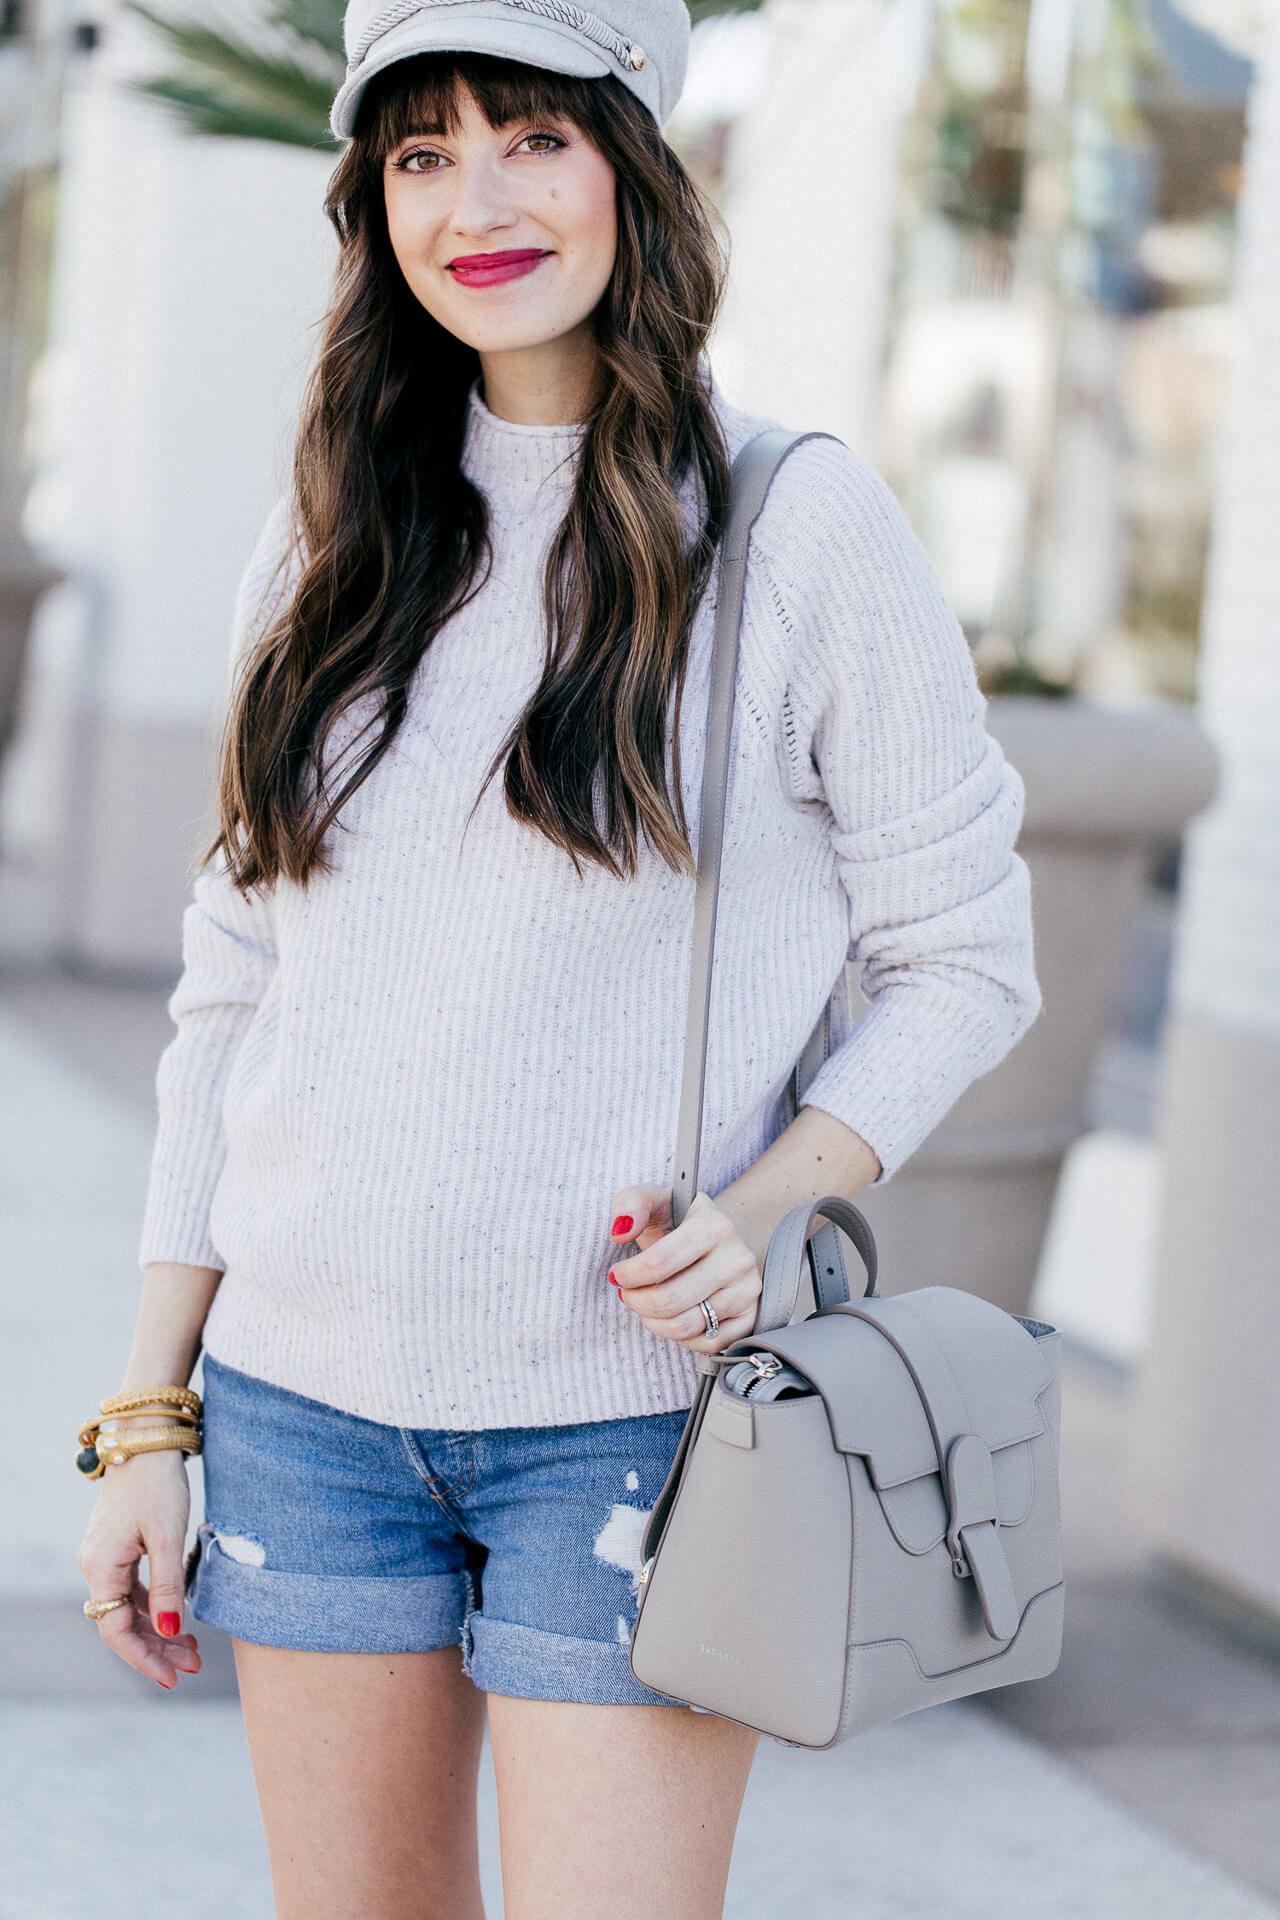 I am loving this fall outfit inspiration! I love this outfit inspired by SoCal in fall! So chic!   M Loves M @marmar